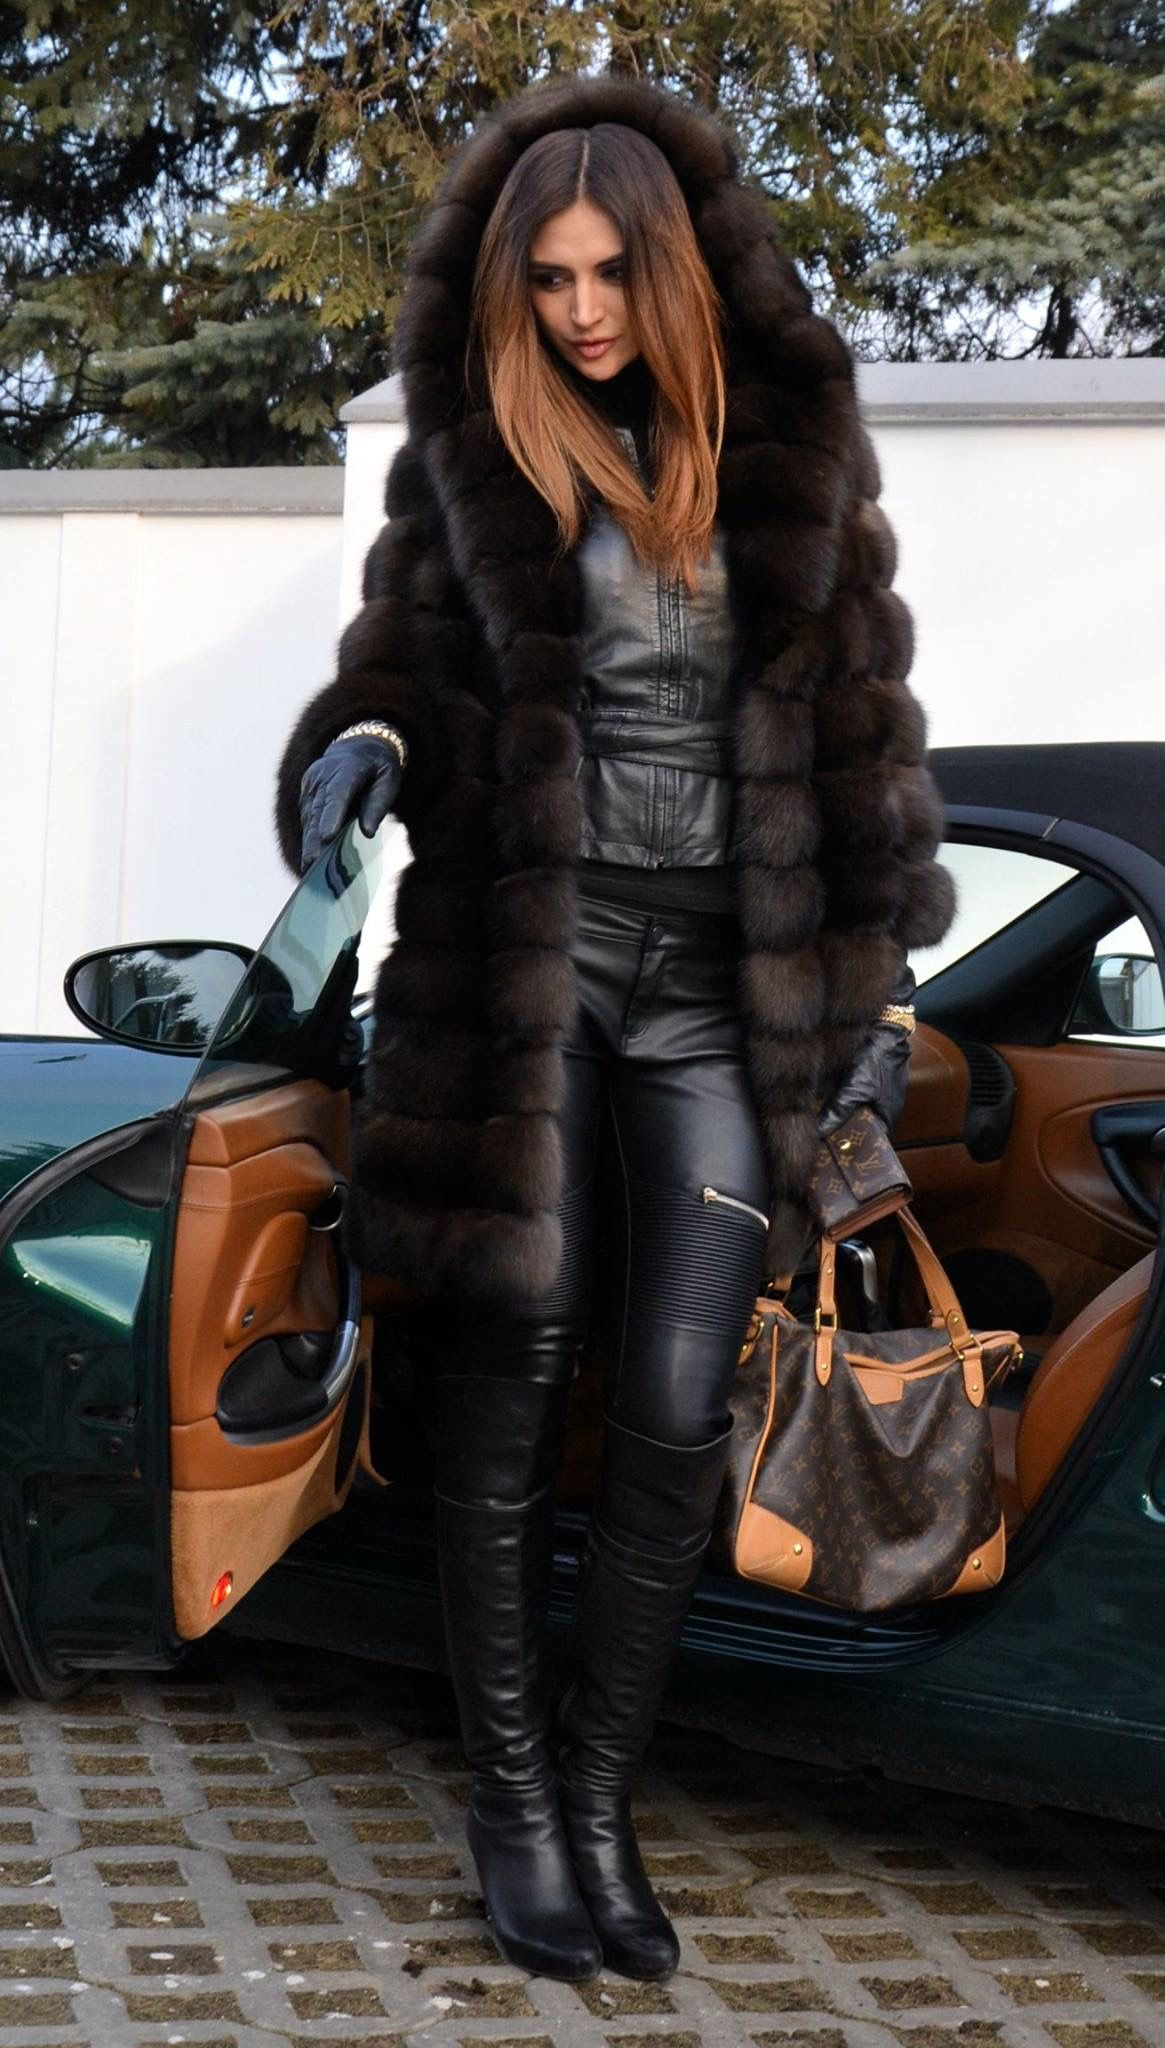 Lady's leather and fur outfits